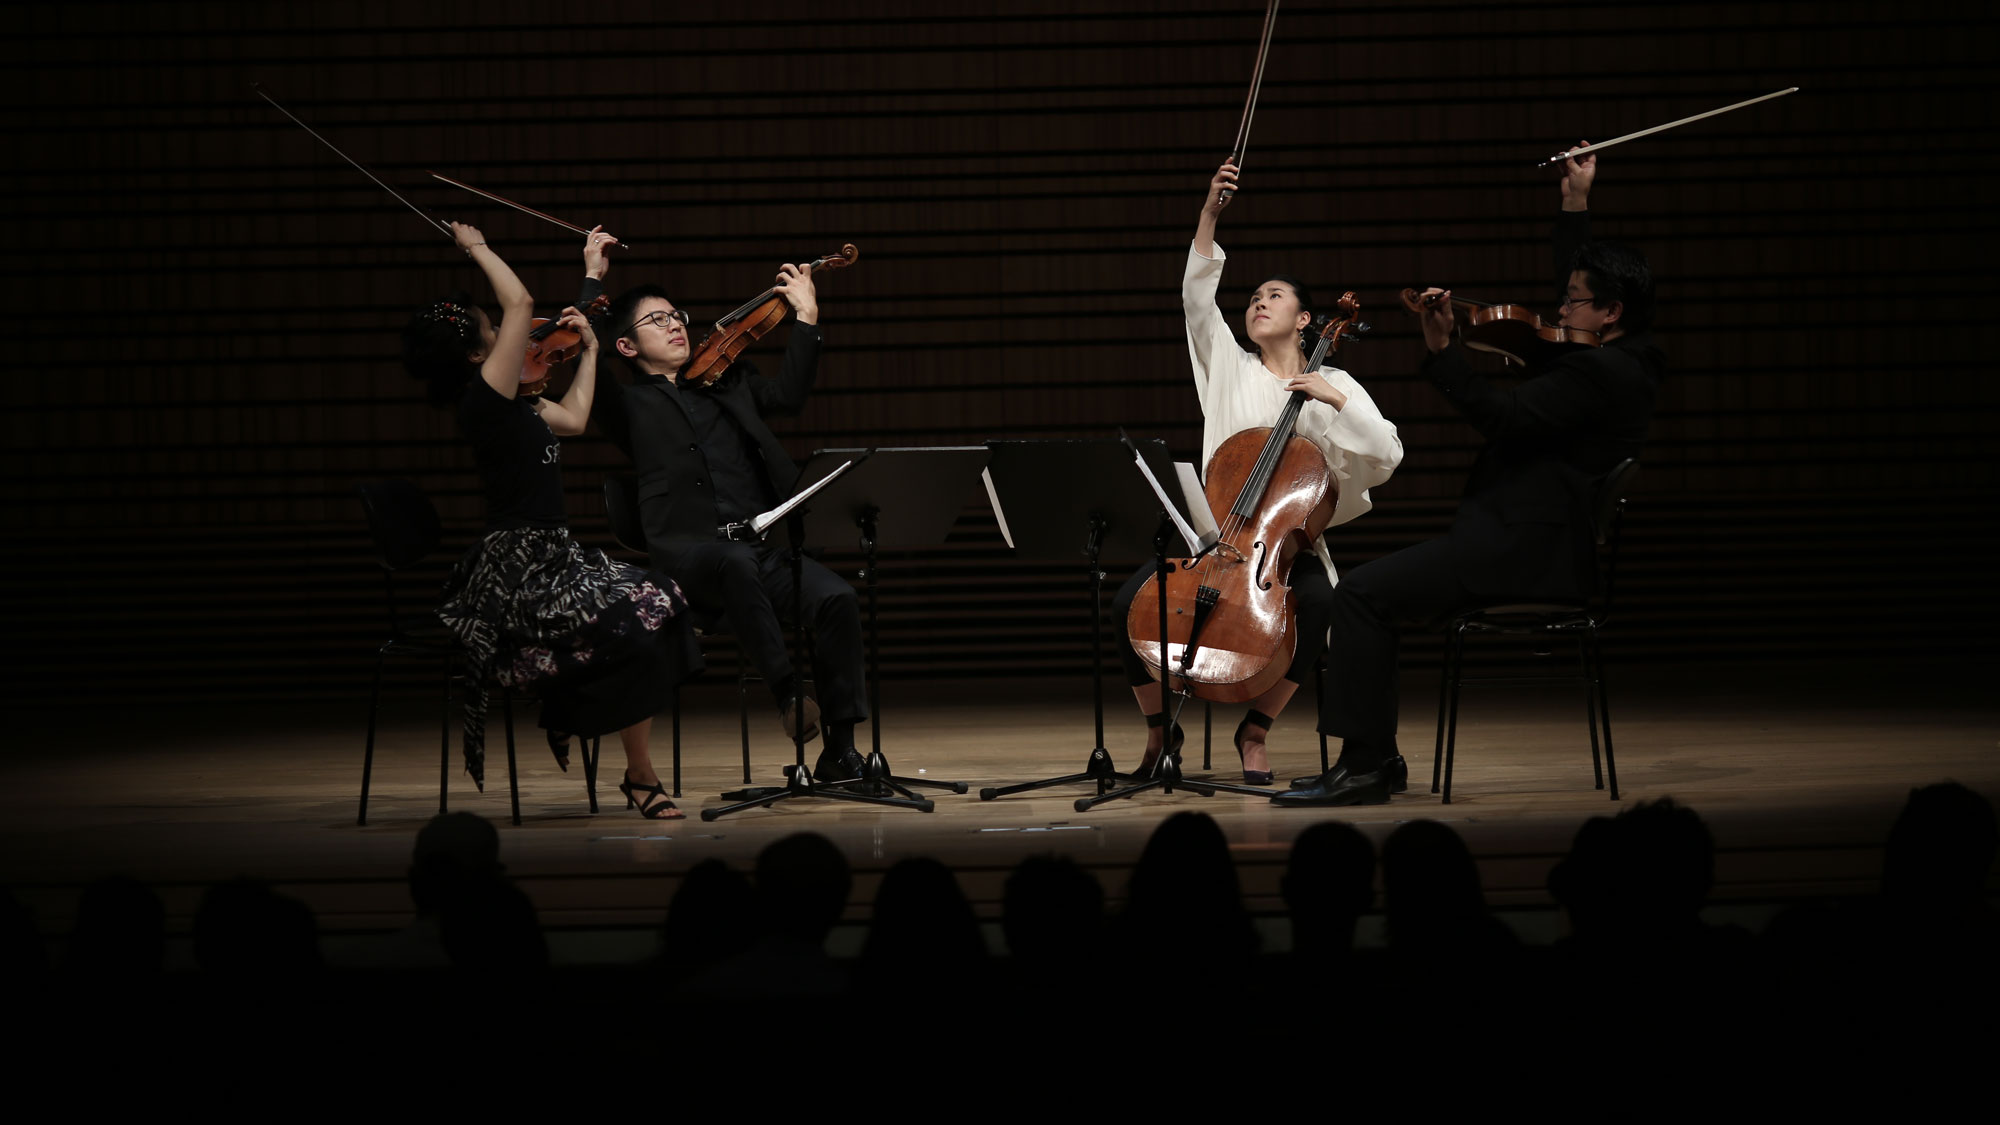 Formosa Quartet in the concert hall